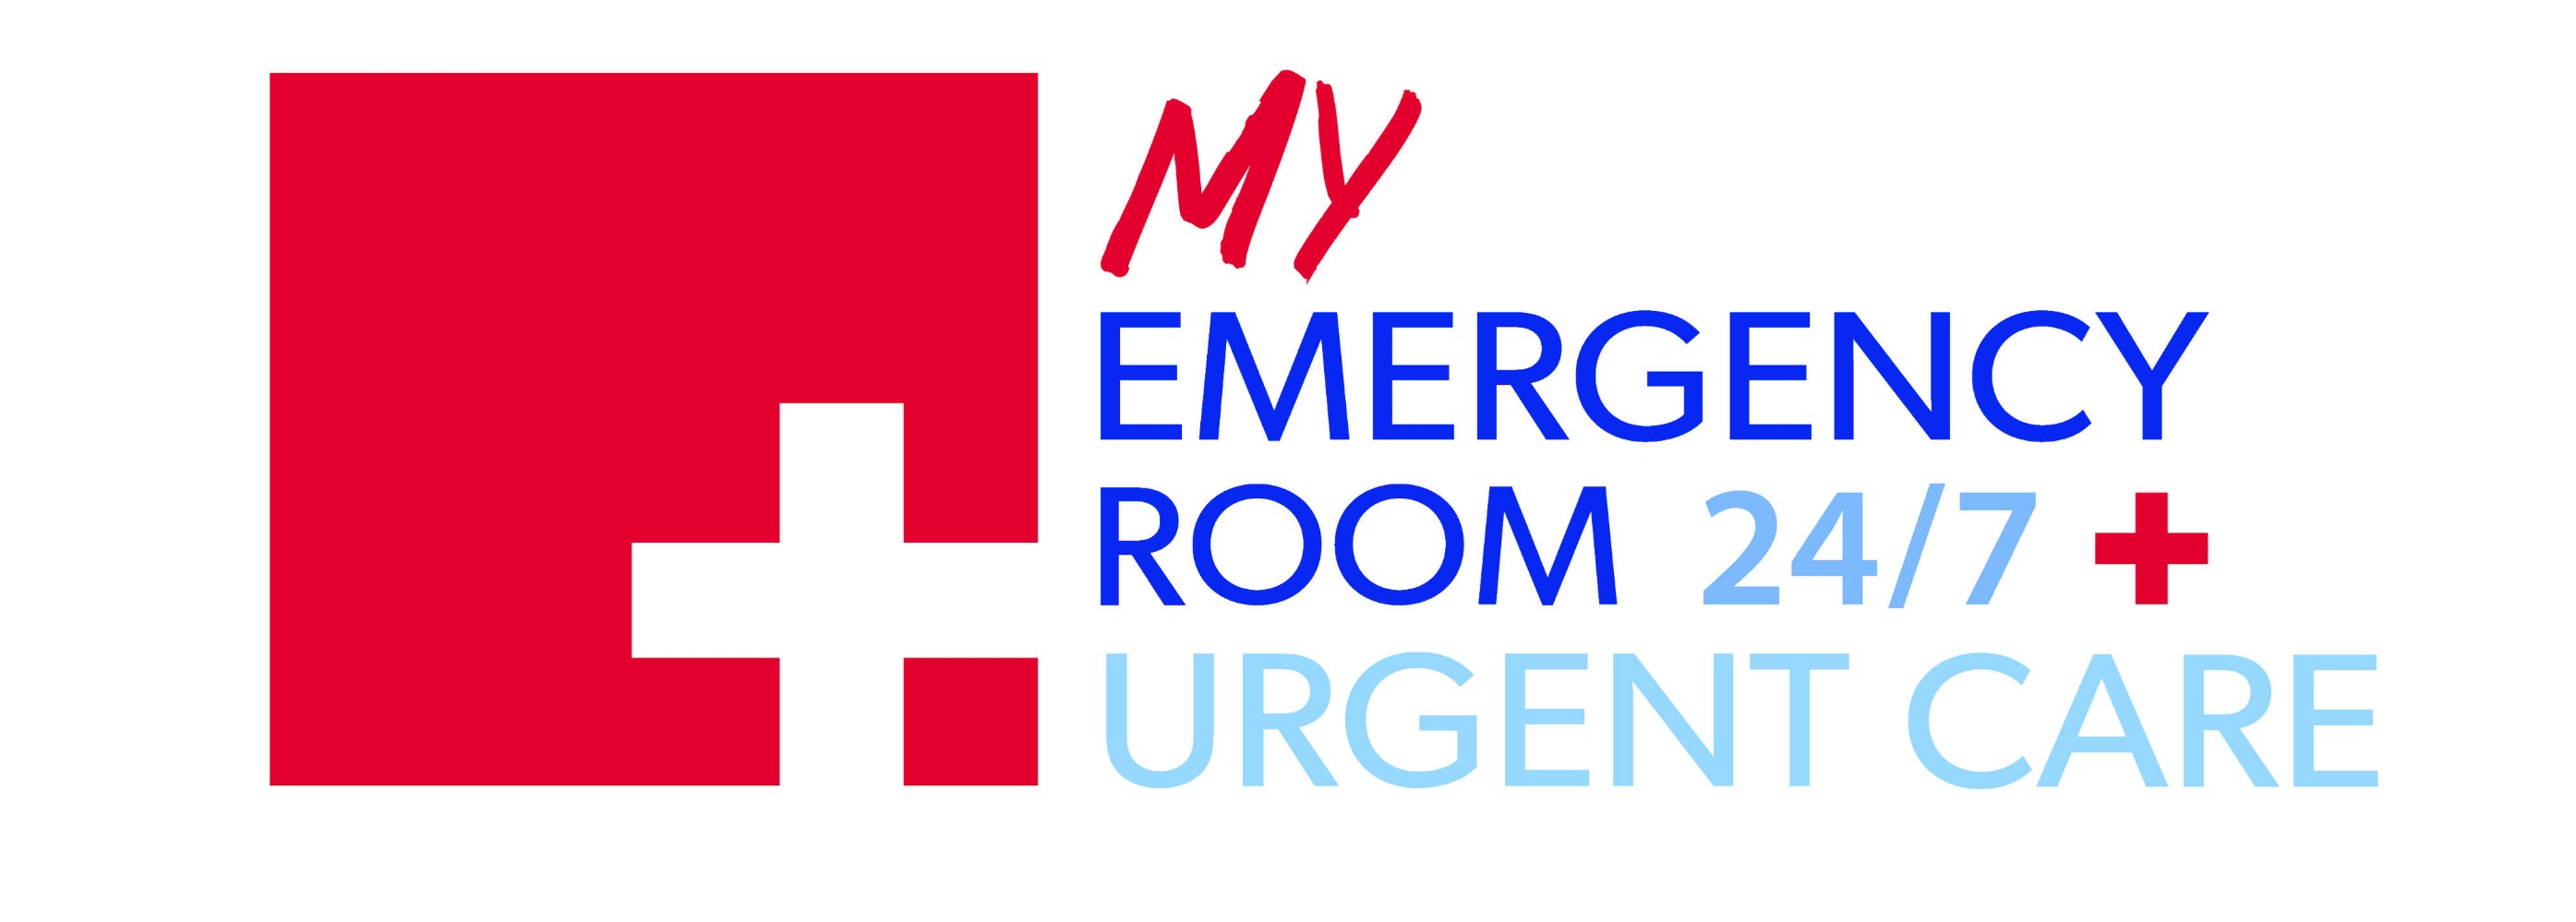 My Emergency Room and Urgent Care logo_e